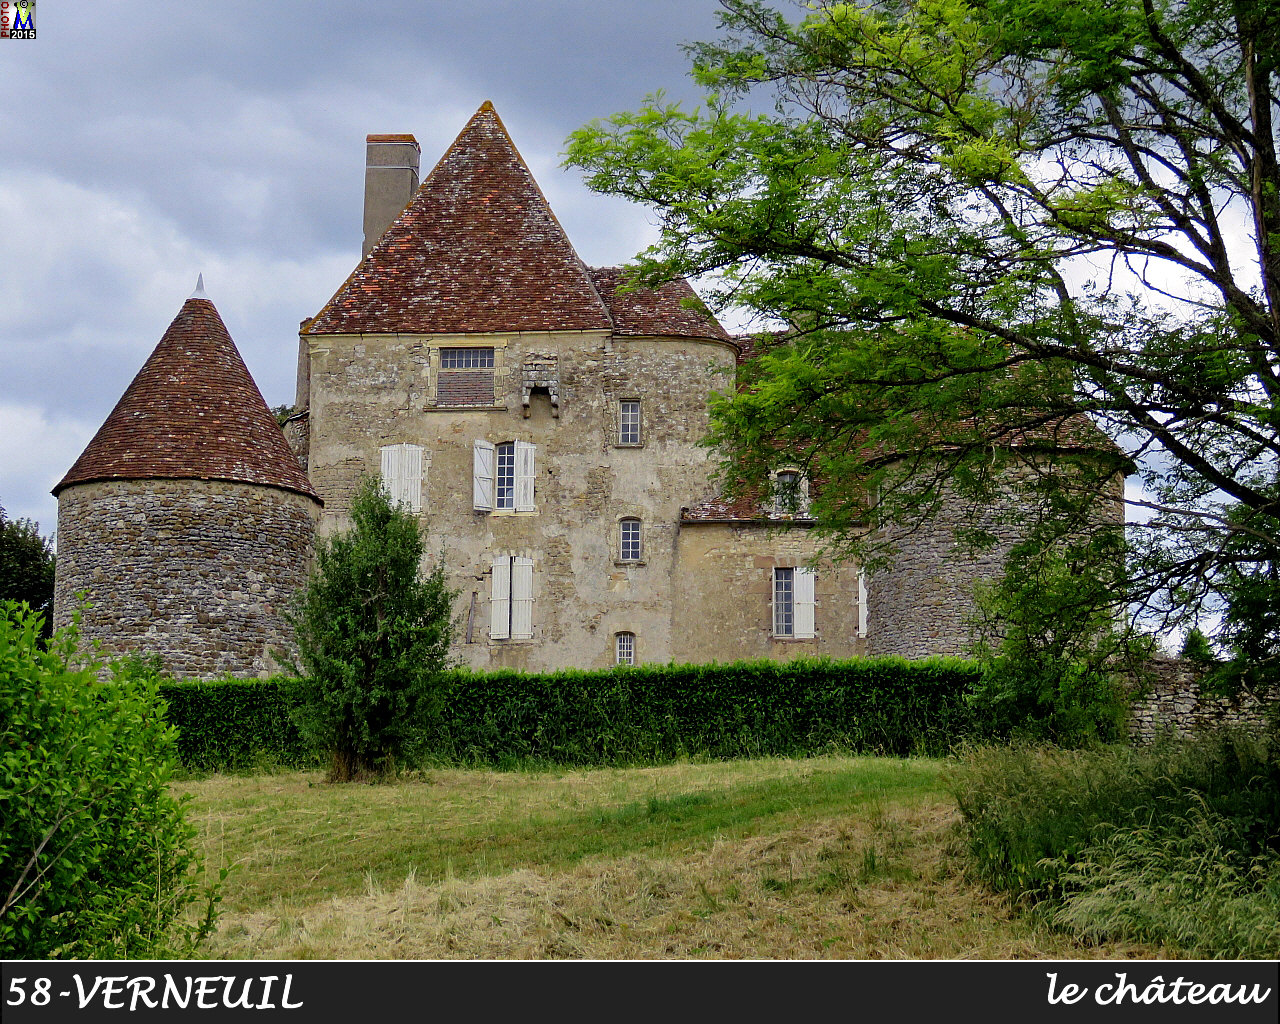 58VERNEUIL_chateau_100.jpg